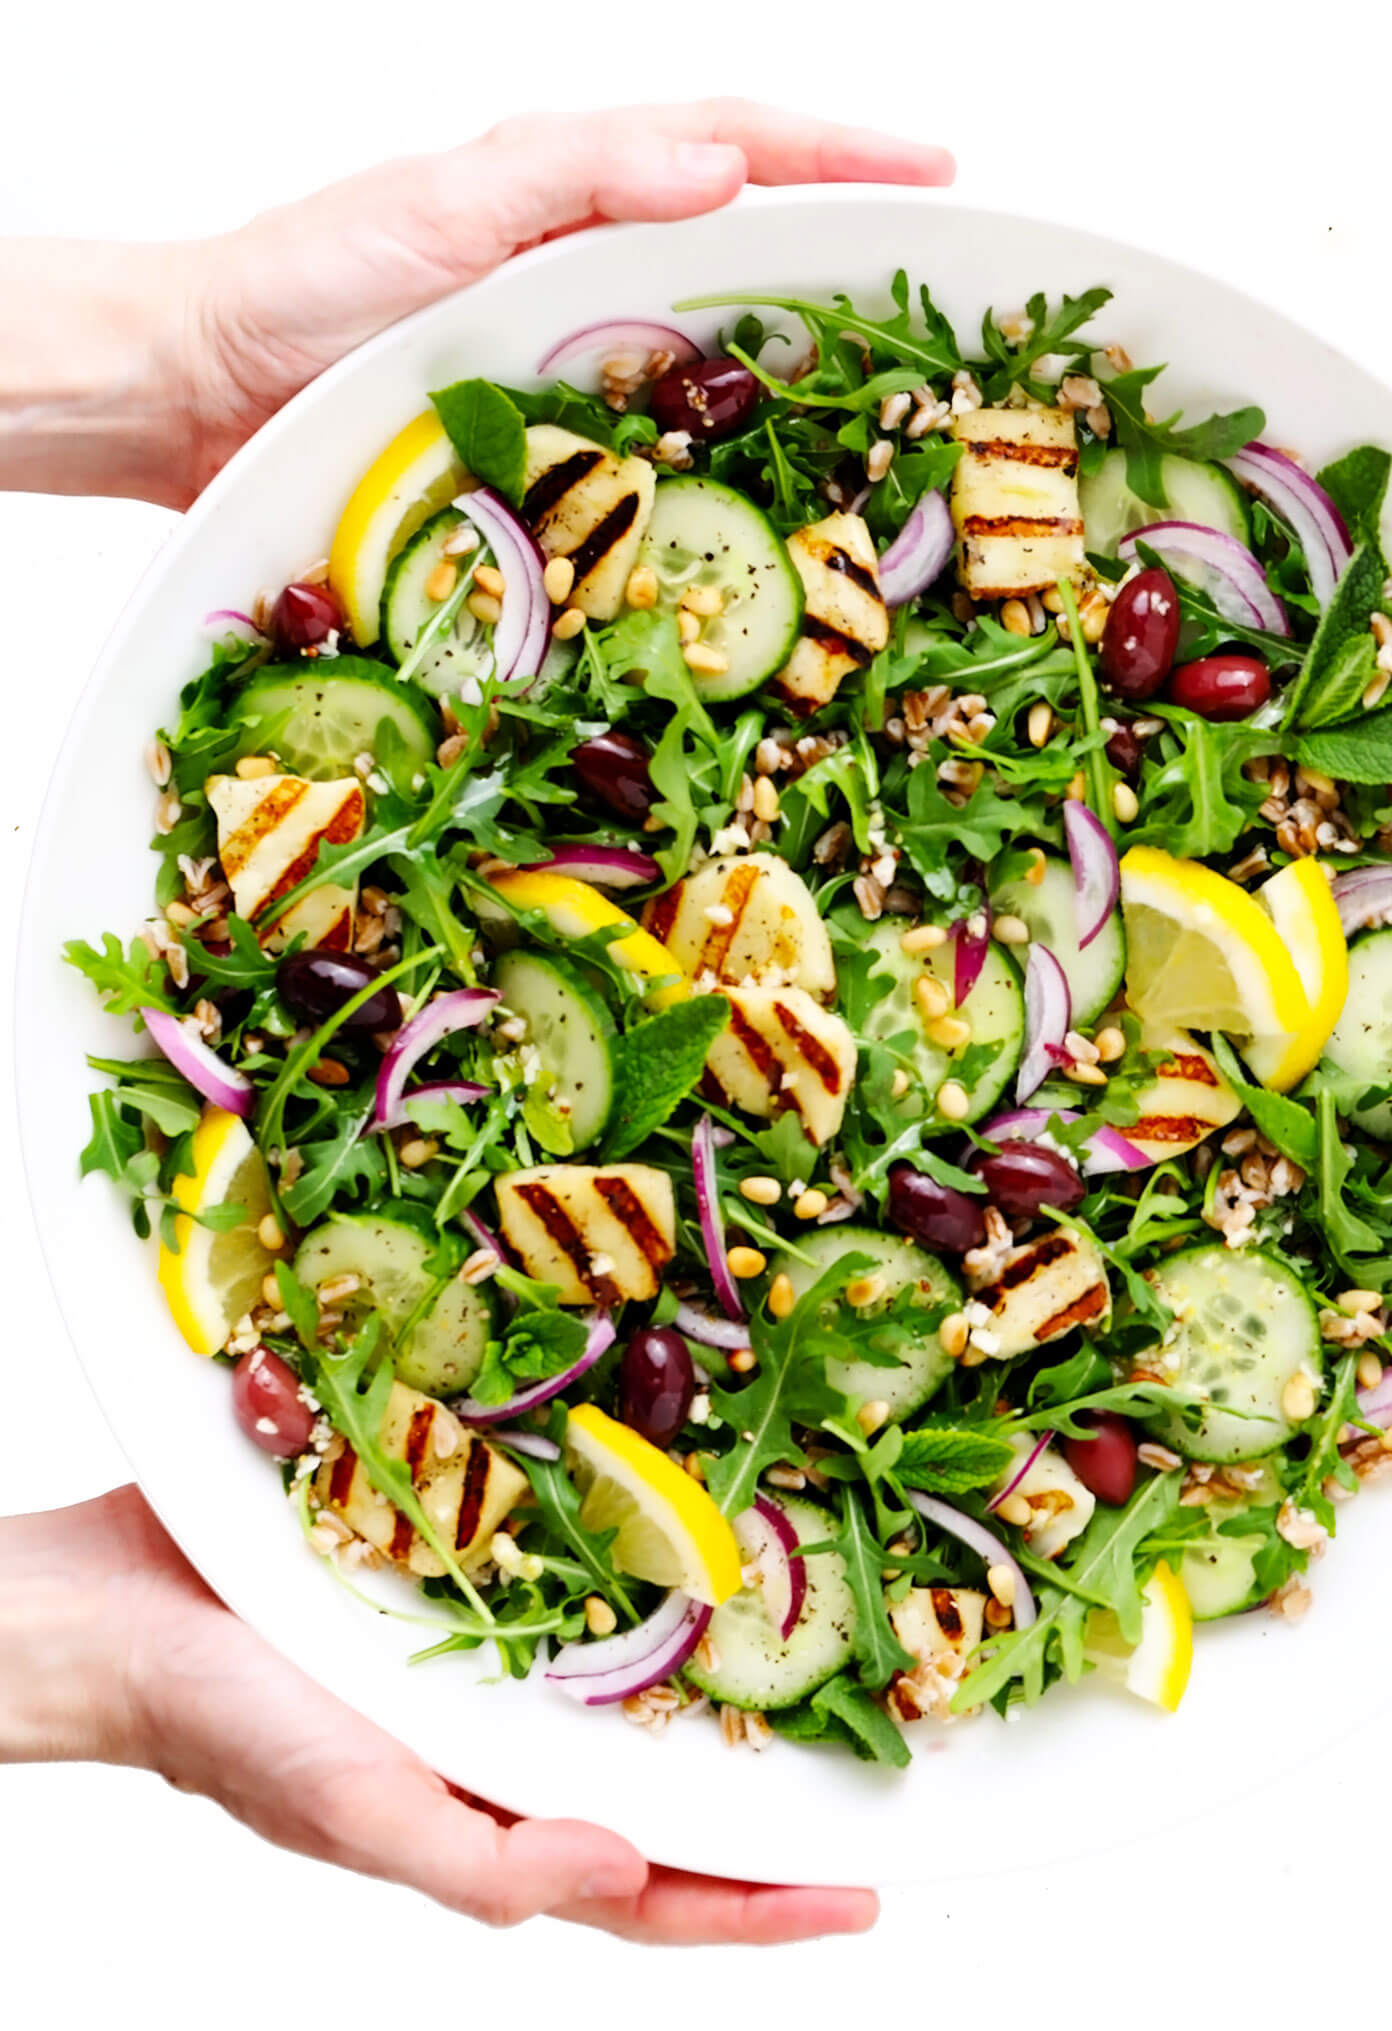 Grilled Halloumi Salad in Large Serving Bowl